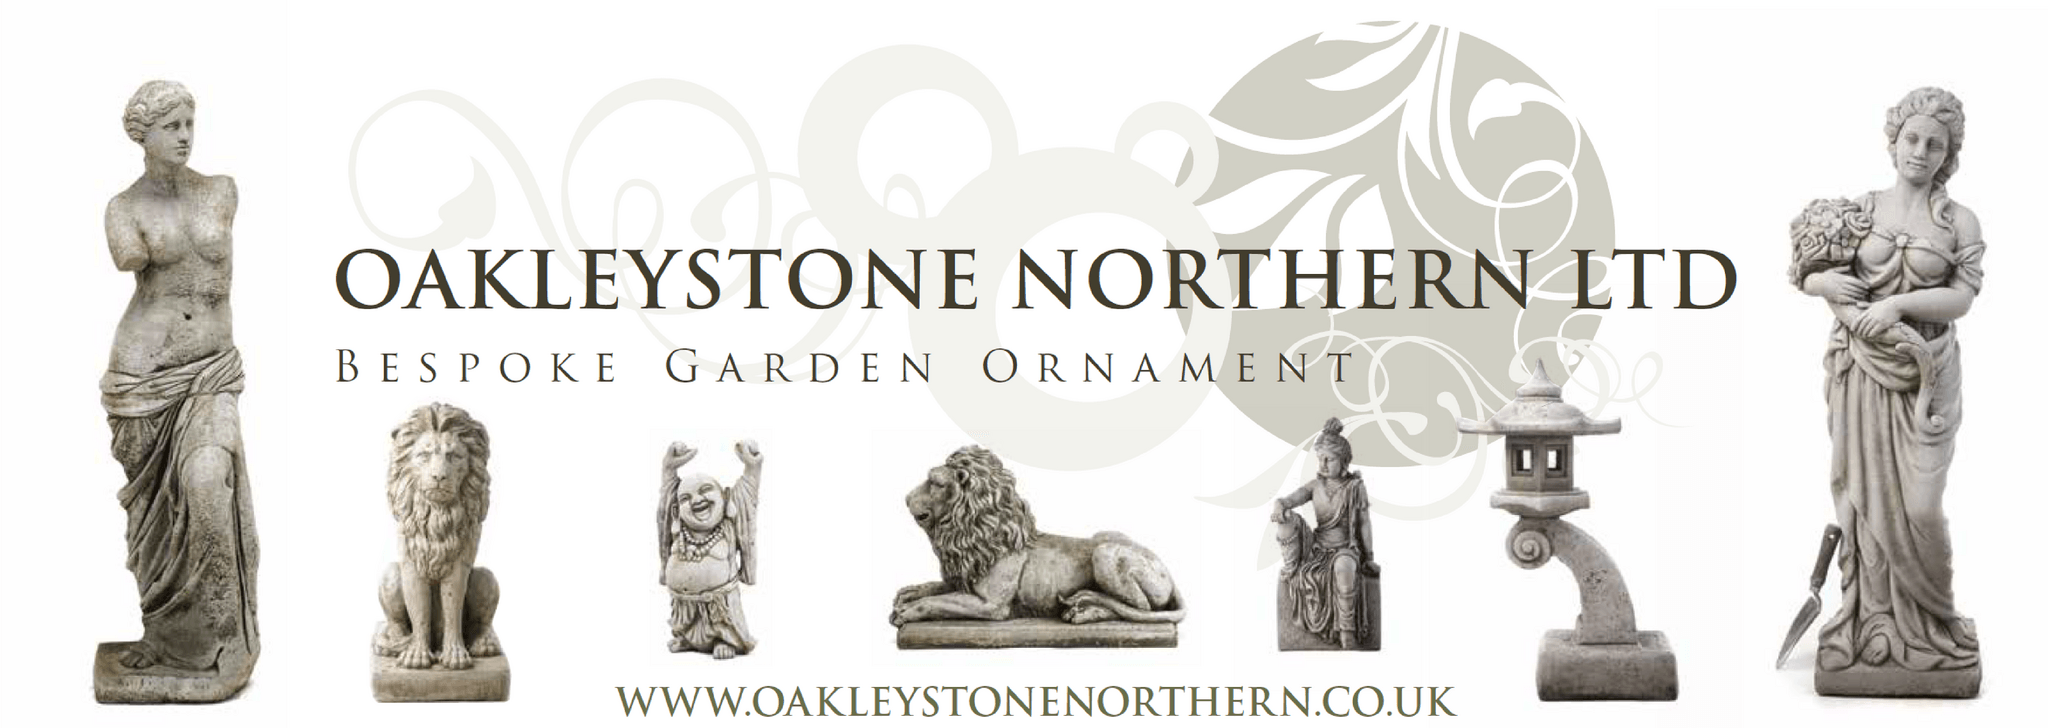 Oakleystone Northern Ltd